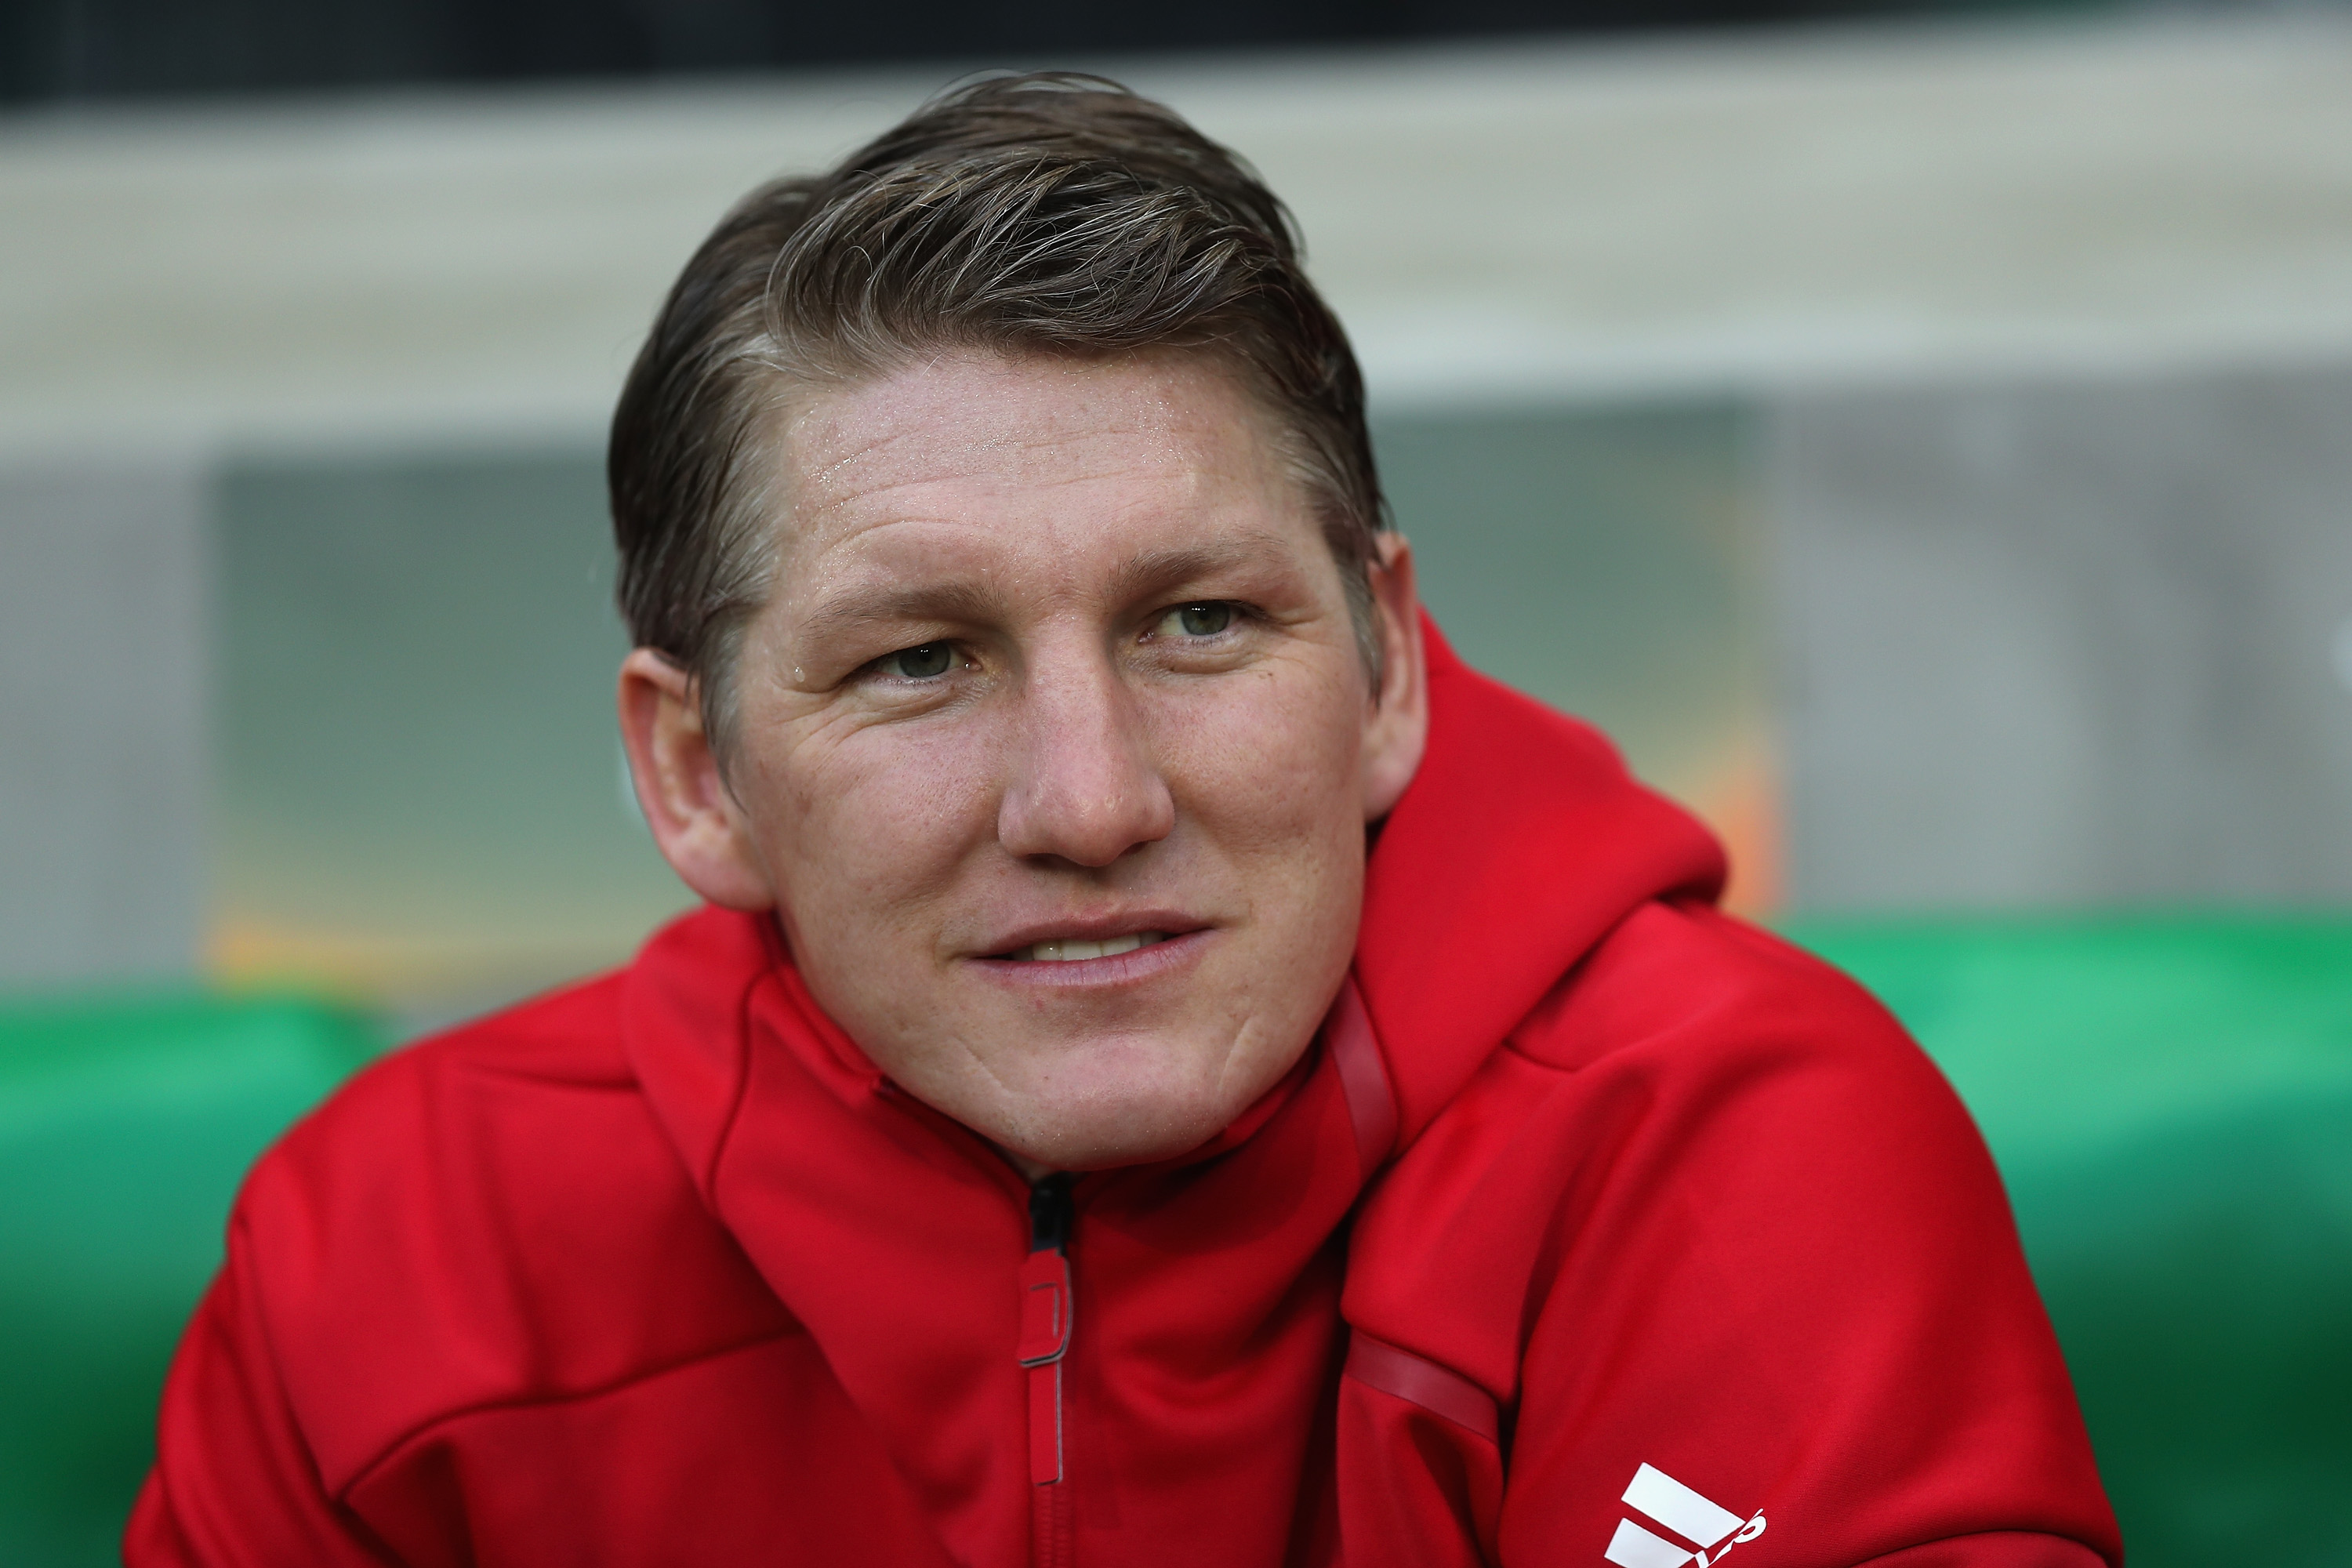 Bastian Schweinsteiger sends message to Manchester United fans after announcing Chicago Fire transfer